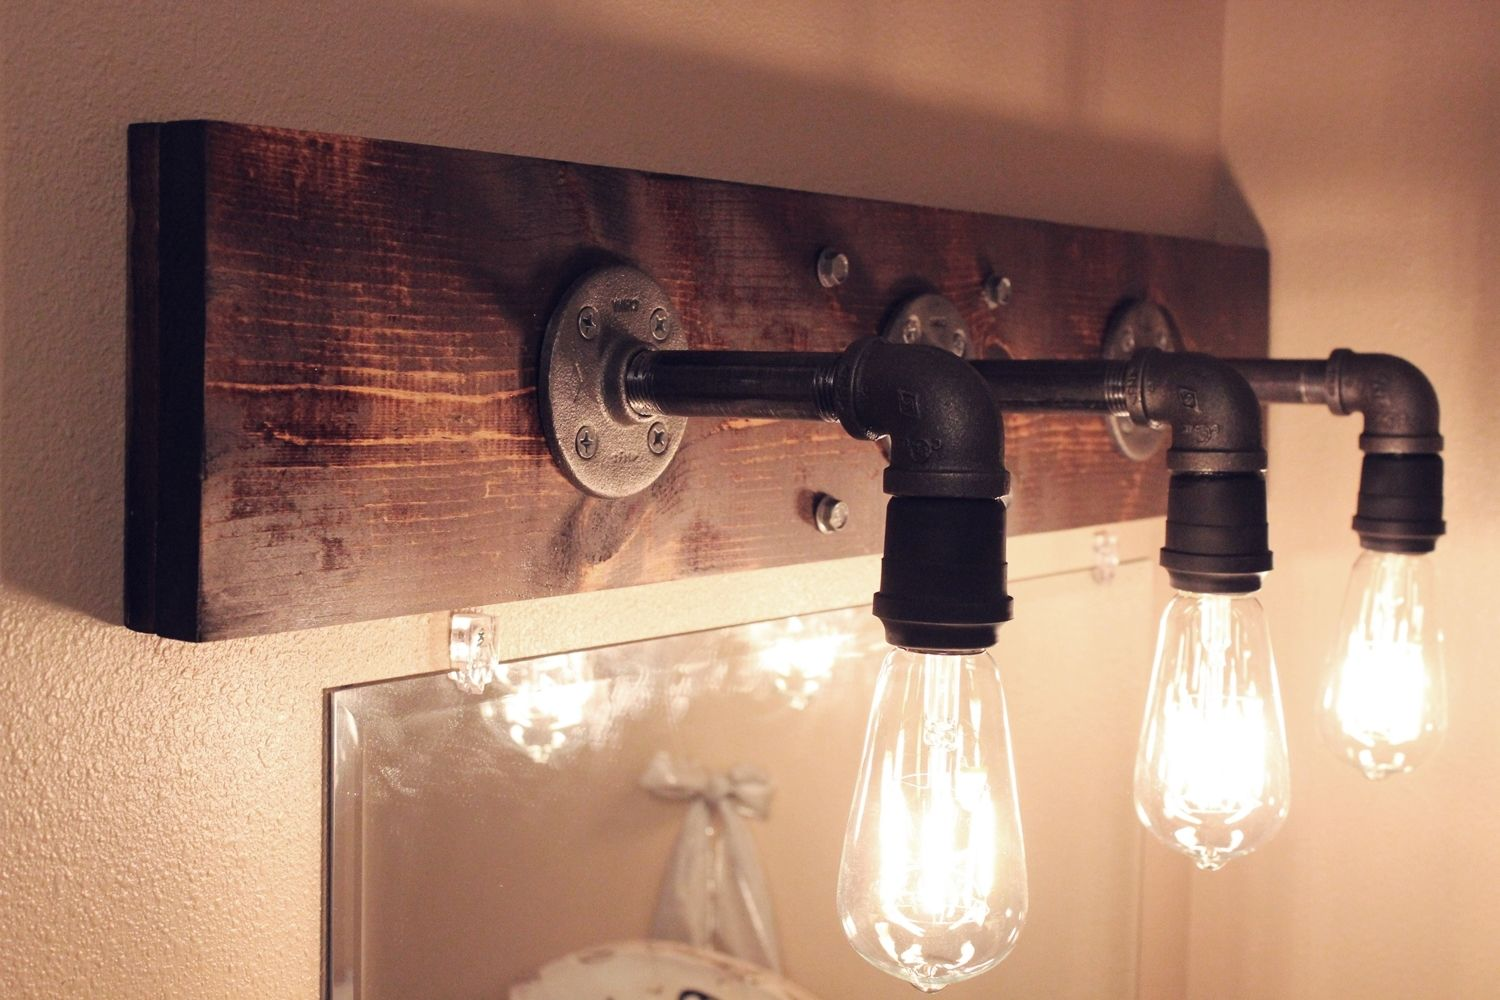 Bathroom Fixtures Lighting diy industrial bathroom light fixtures